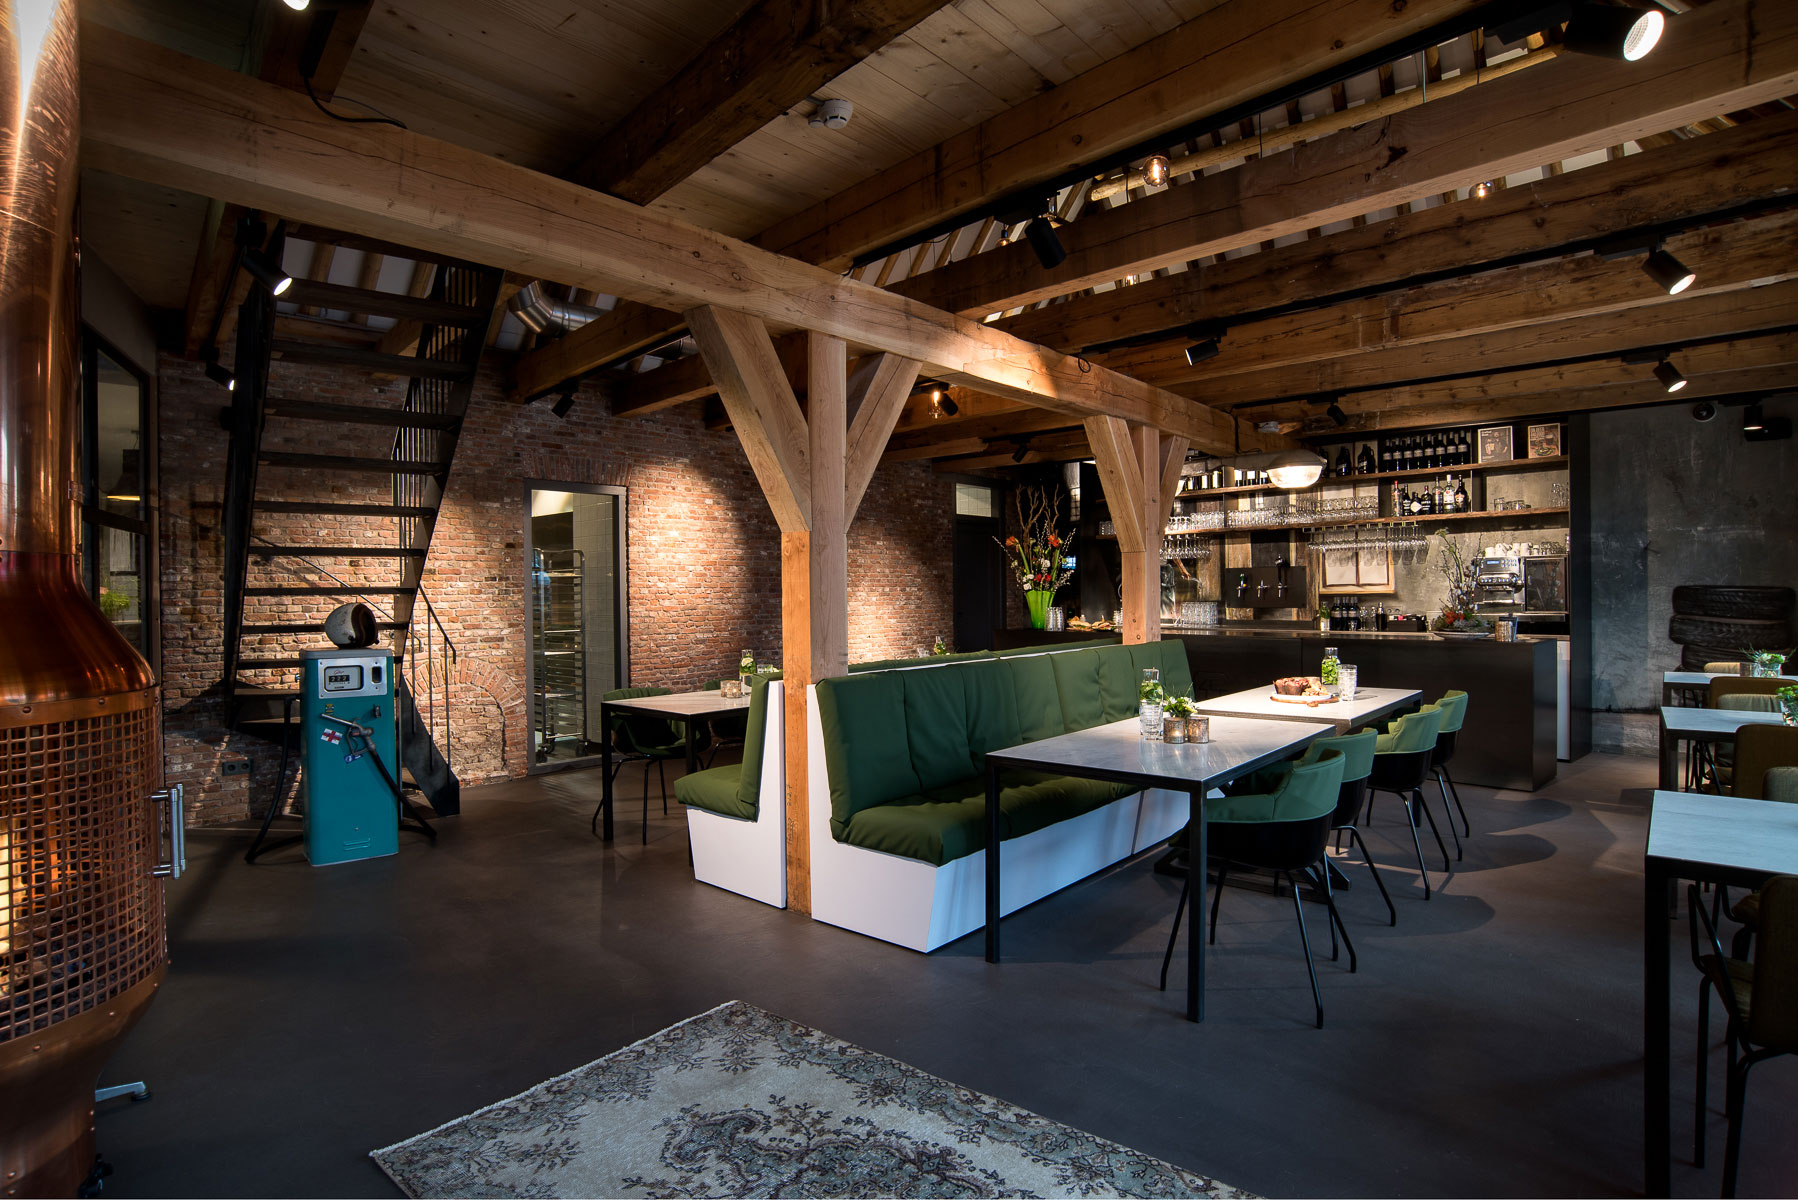 Old Garage Turned Hip Restaurant and Meeting Space in Amstelveen